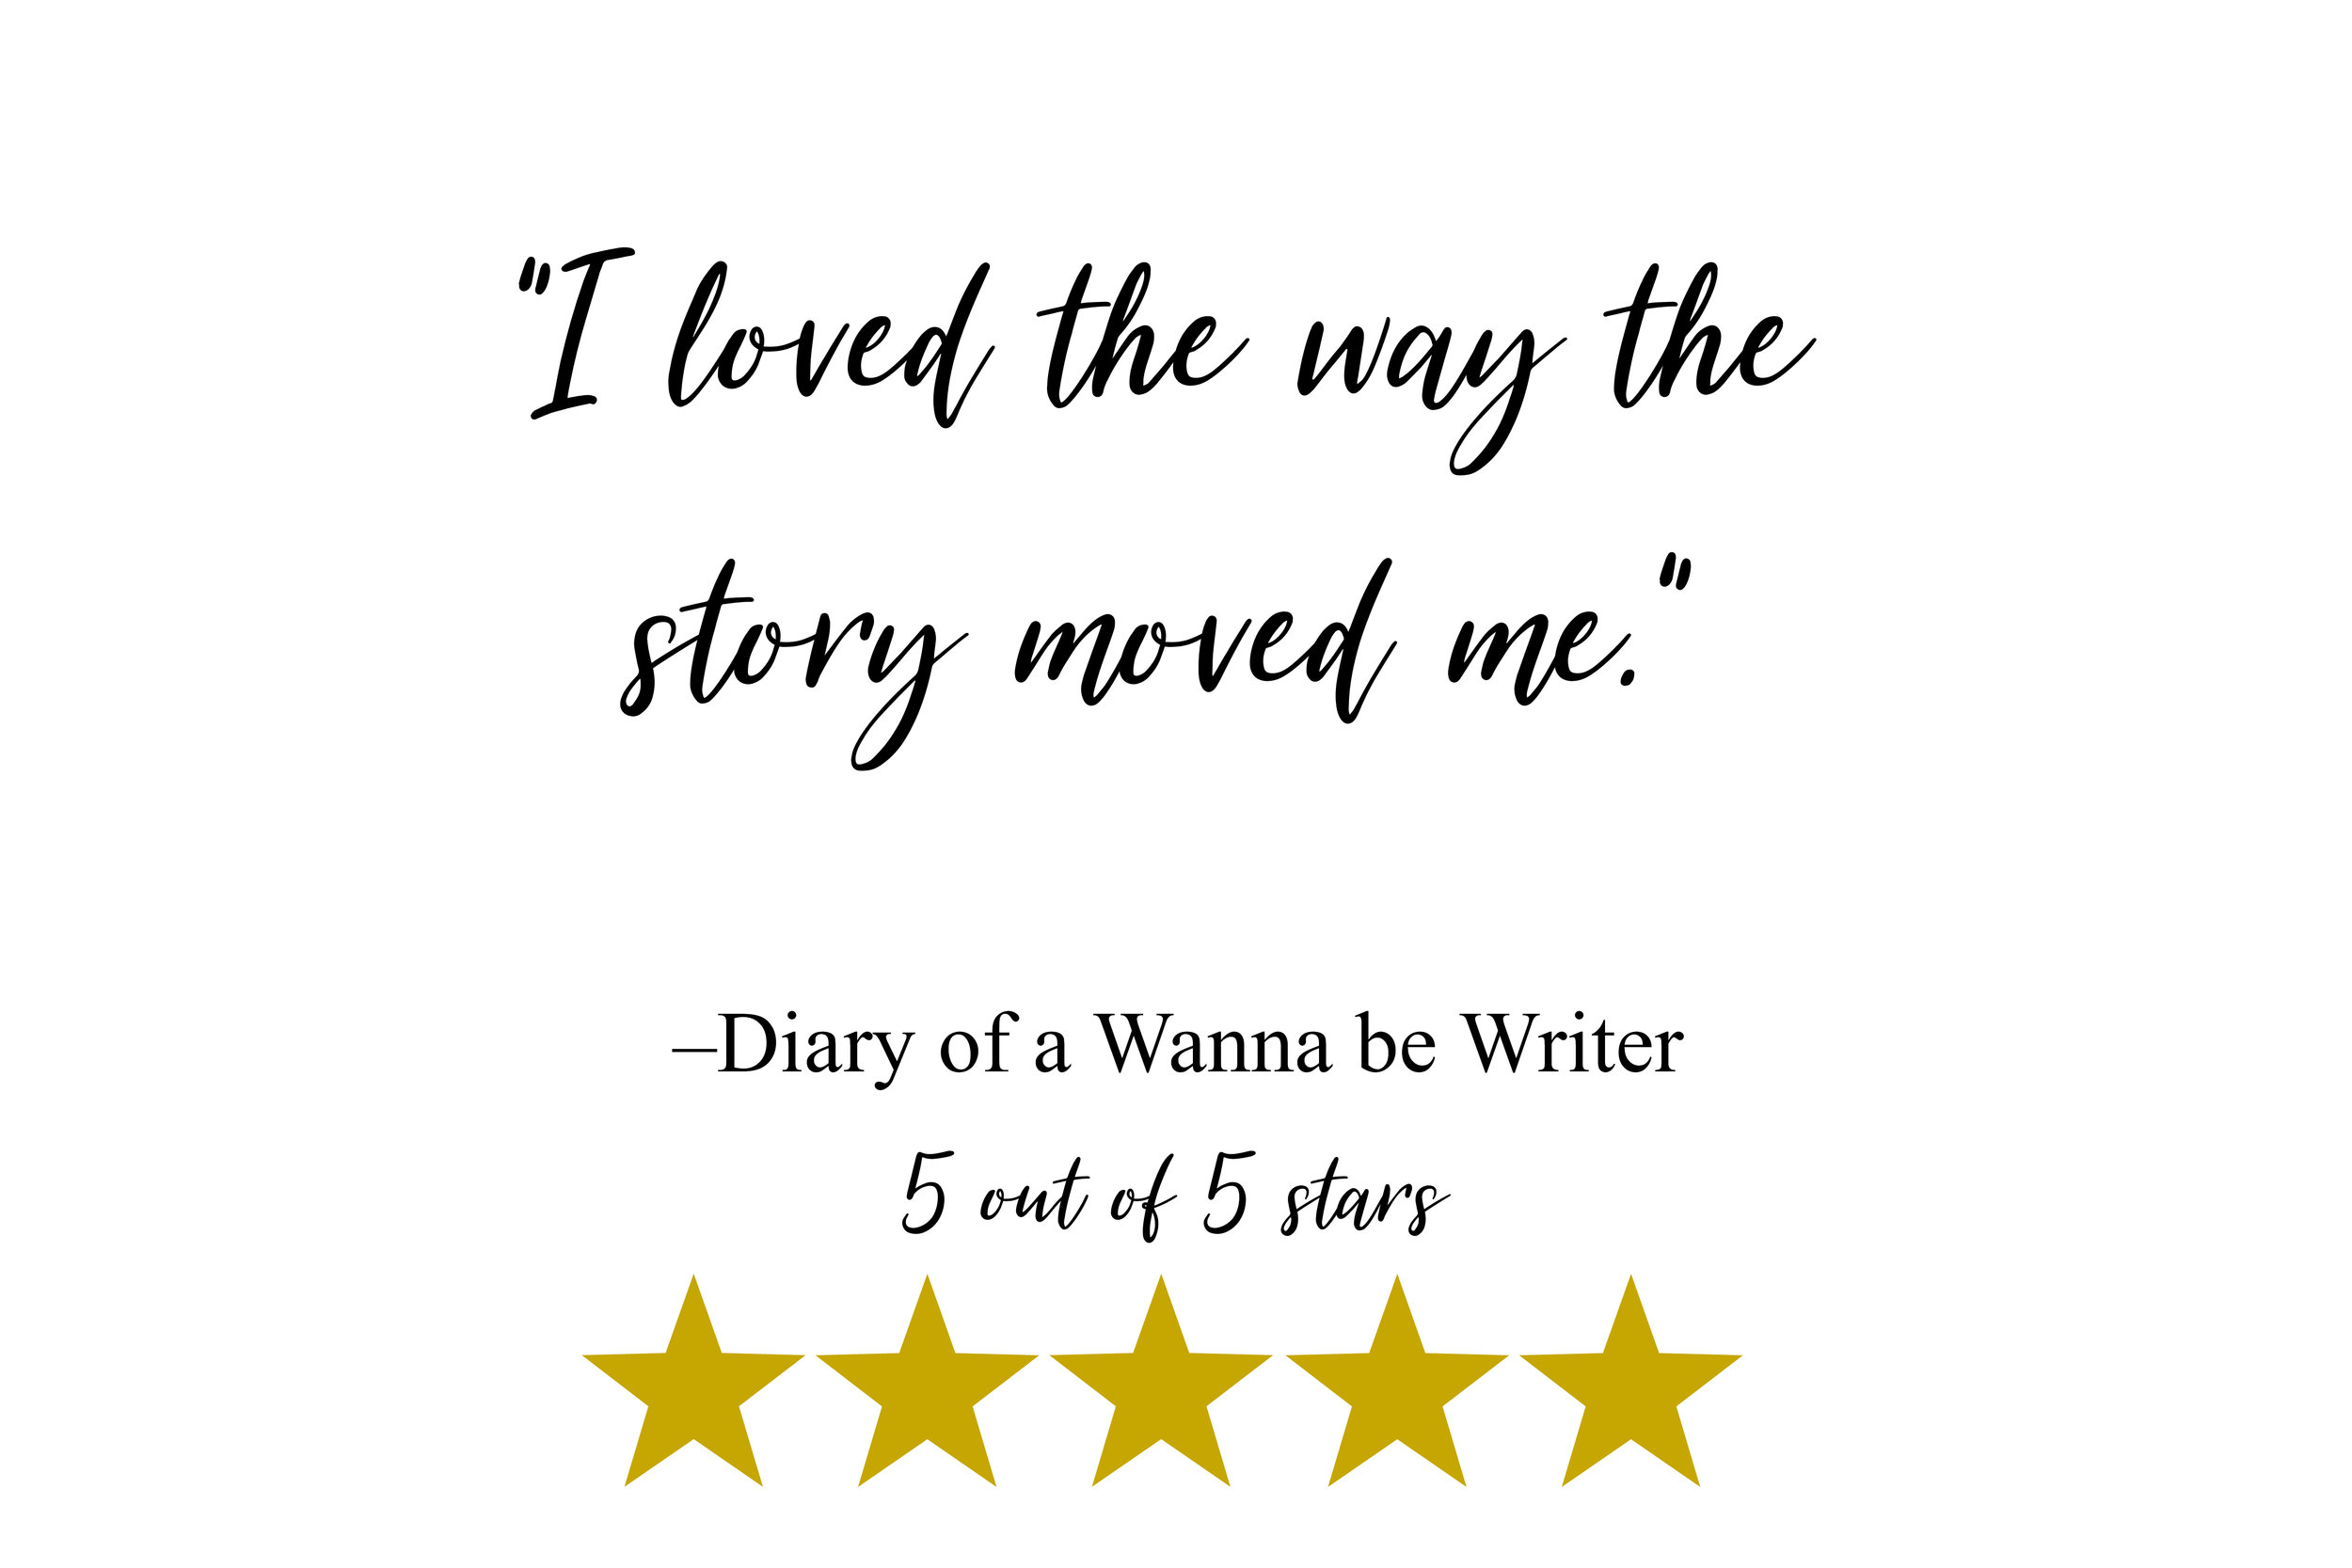 """I loved the way the story moved me."" –Diary of a Wanna be Writer"